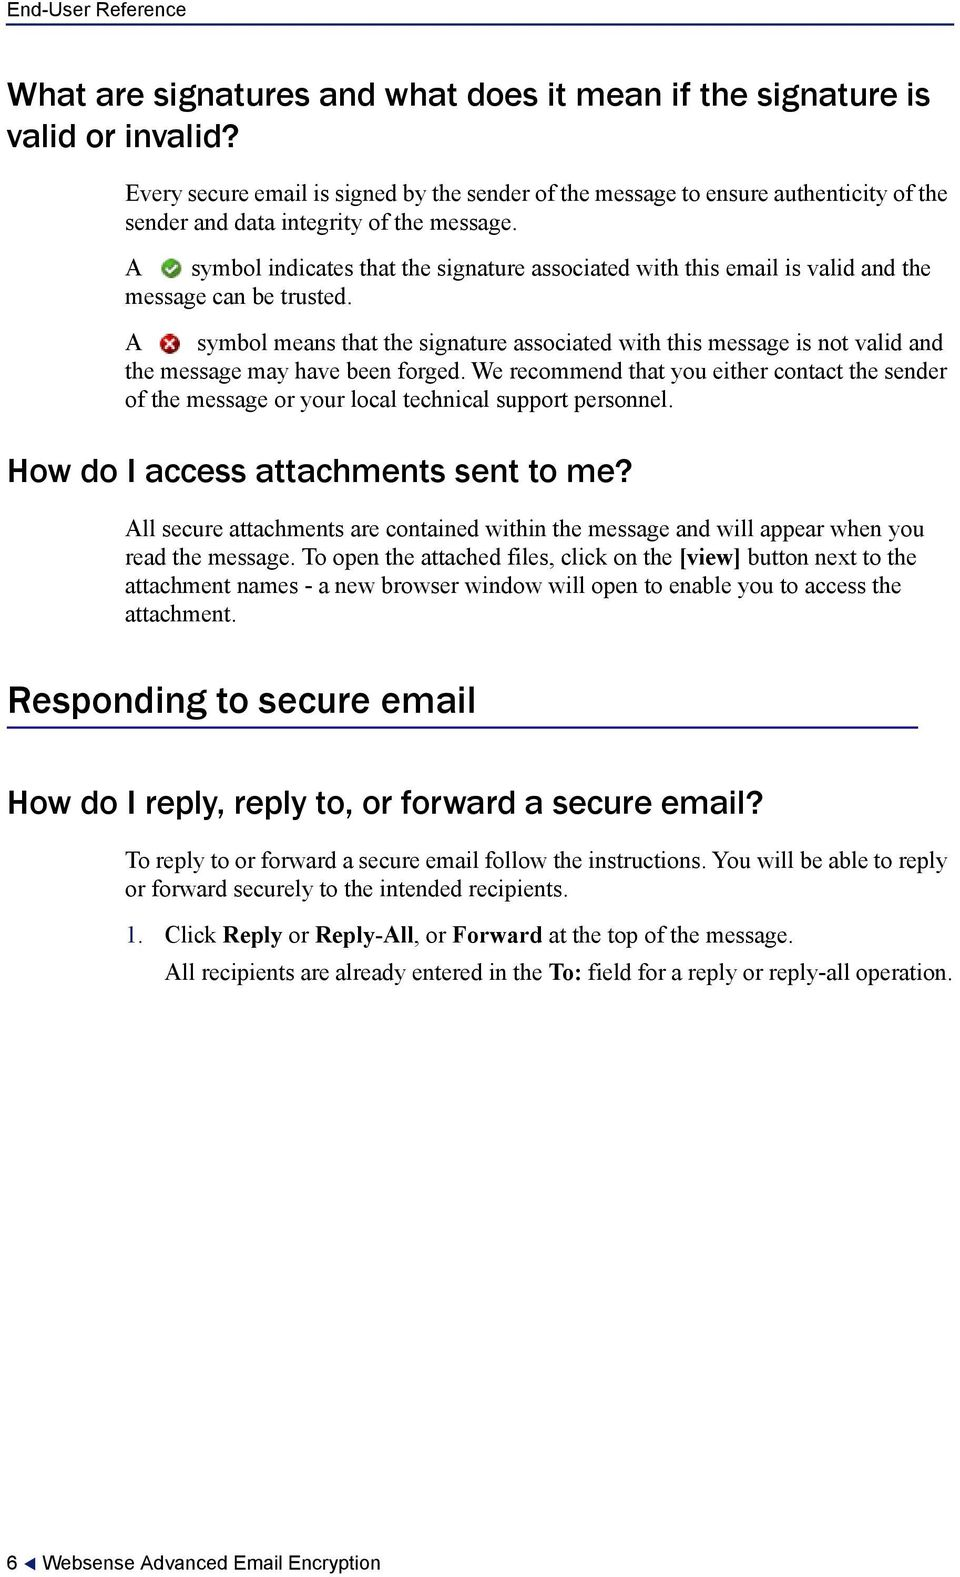 A symbol indicates that the signature associated with this email is valid and the message can be trusted.